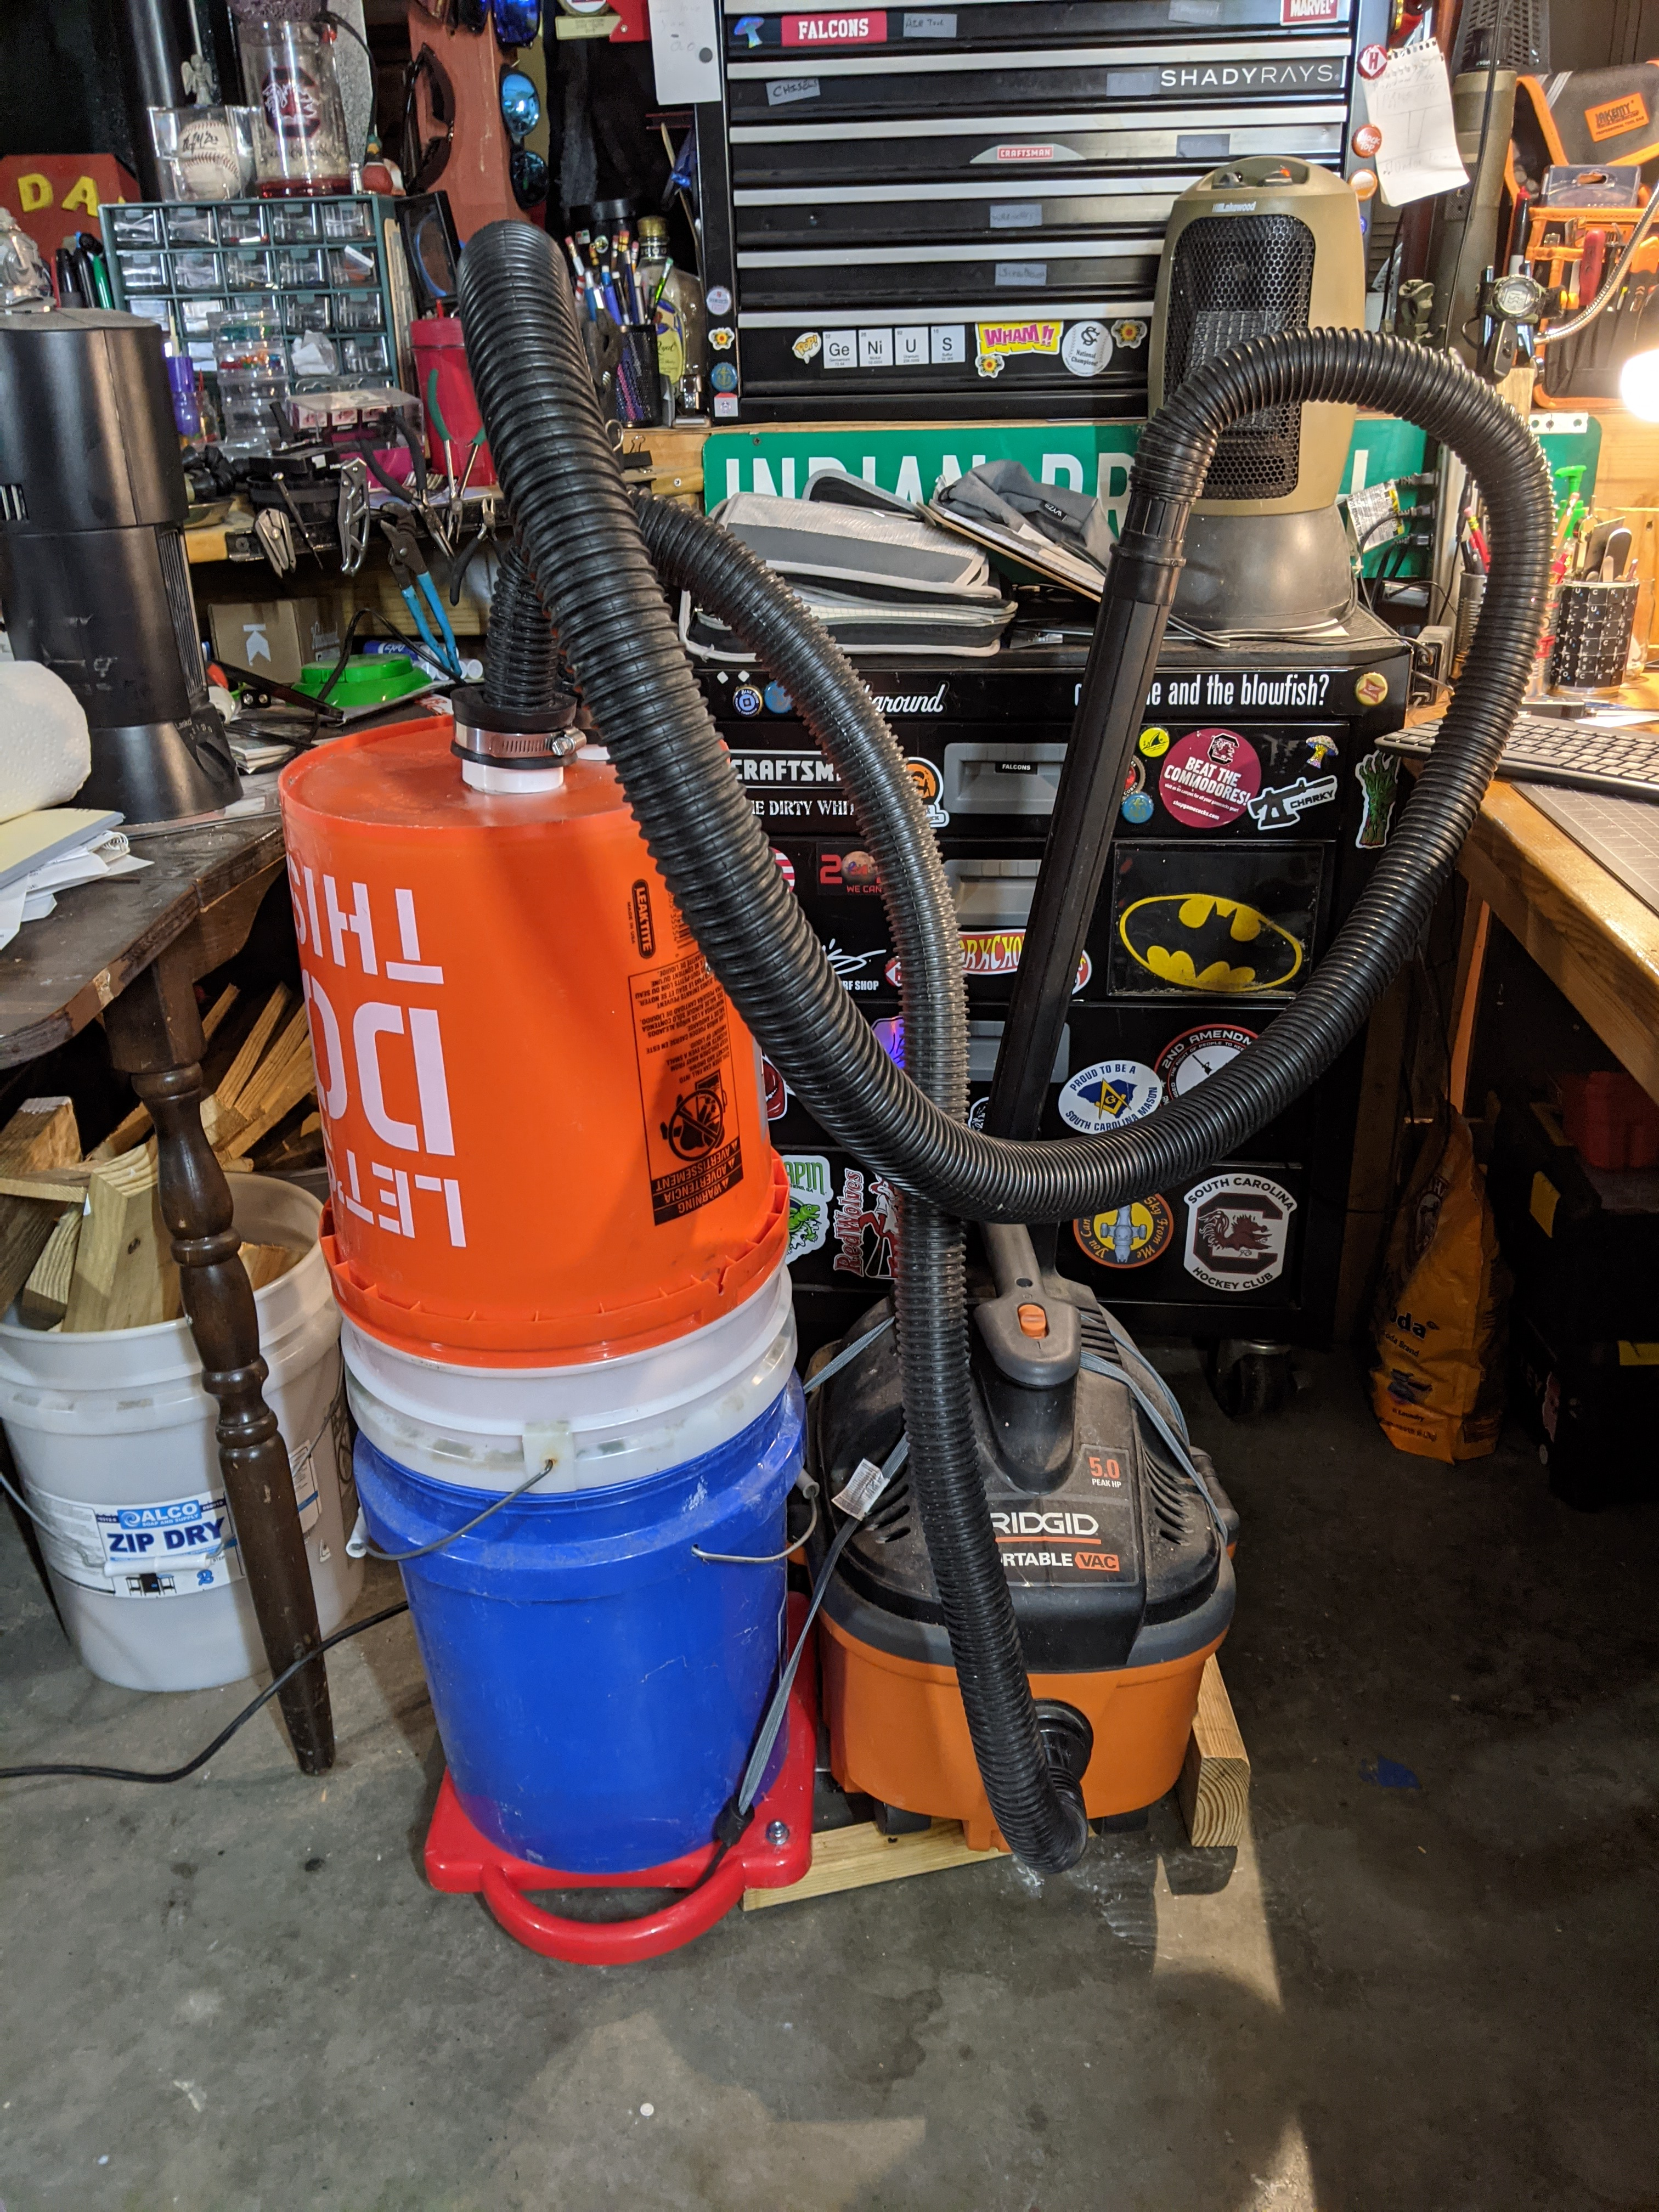 Ugly, but effective shop vac dust separator.